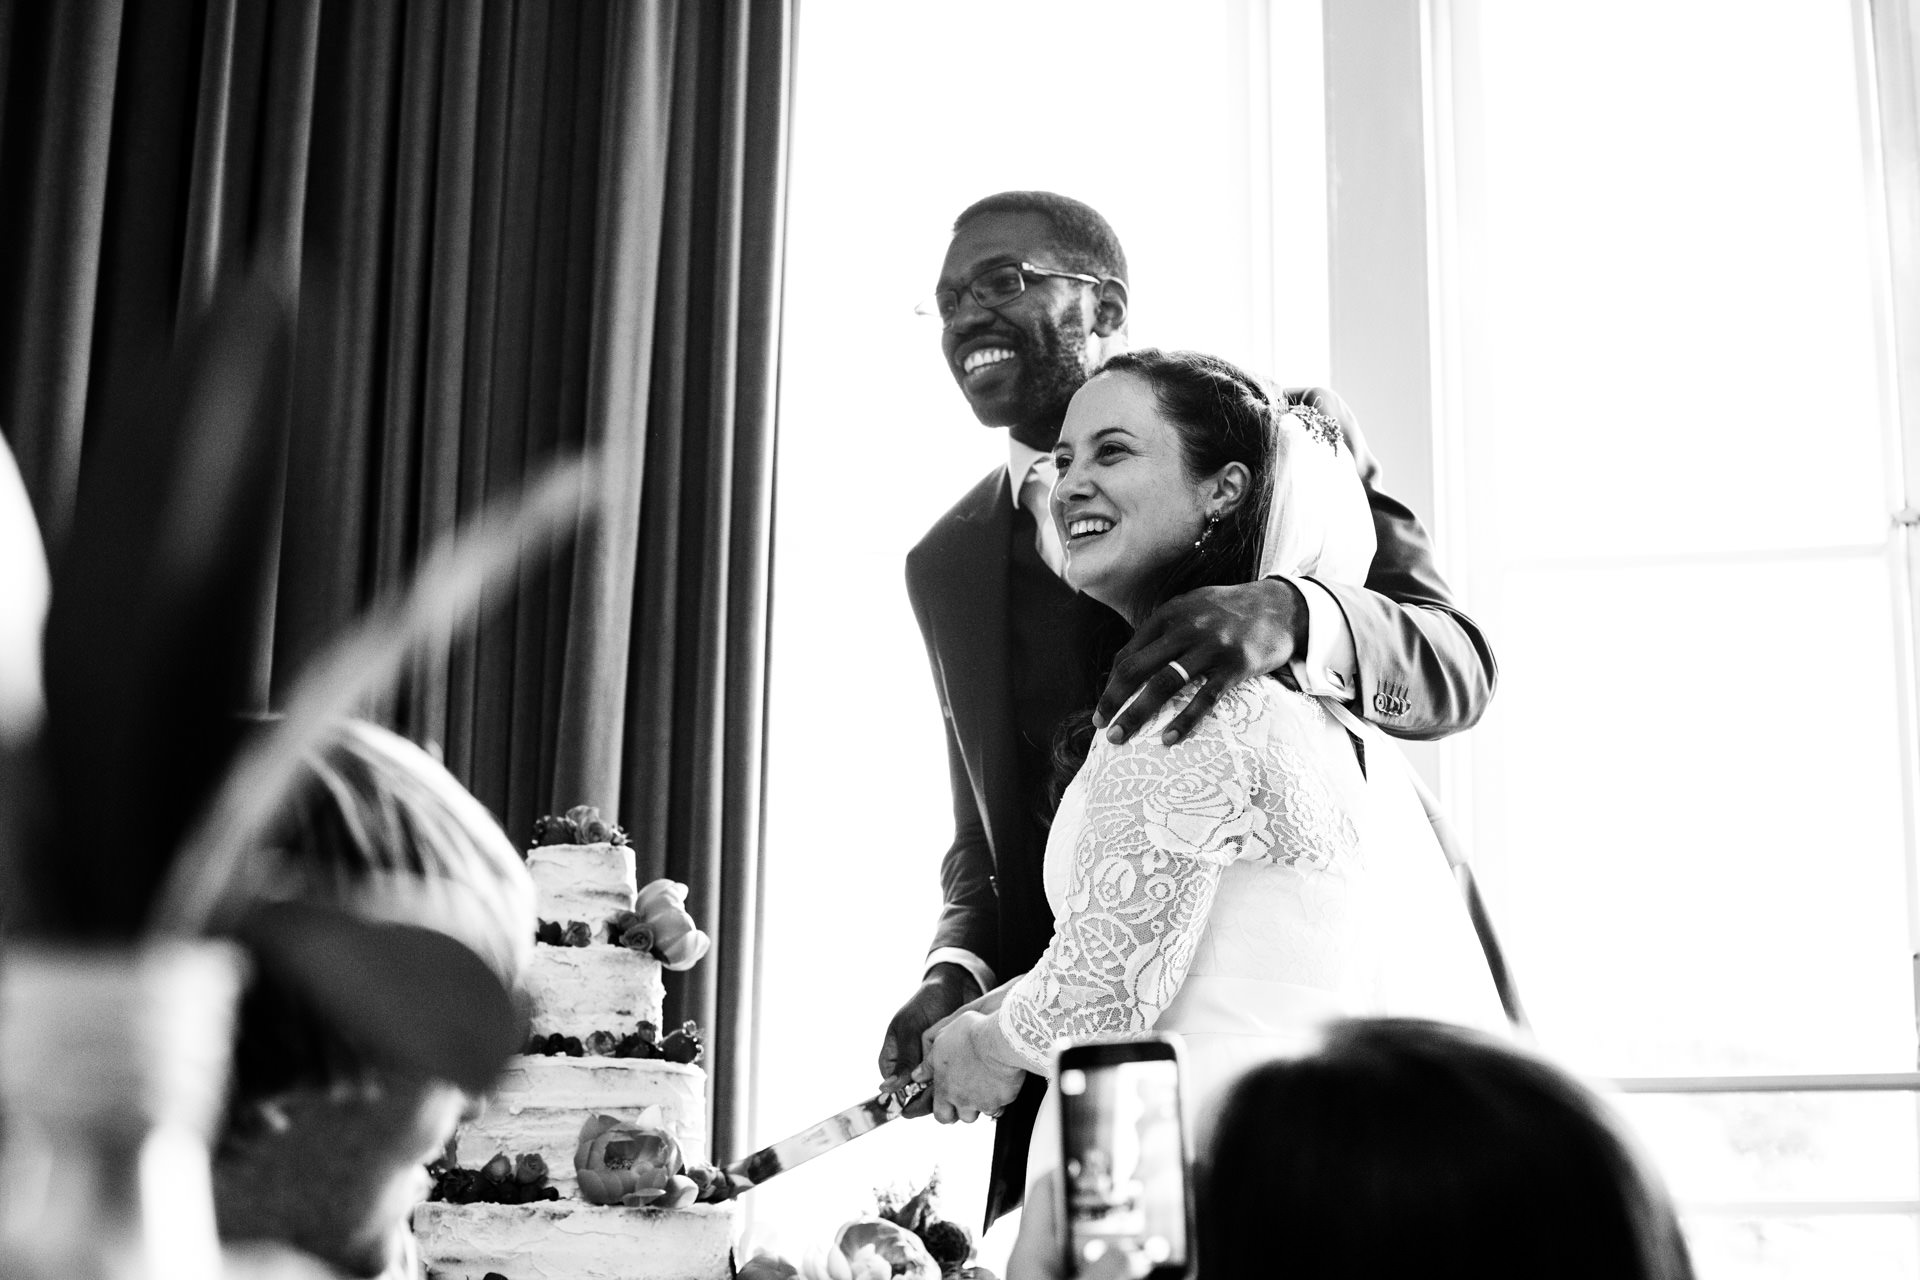 The happy couple cut the cake!